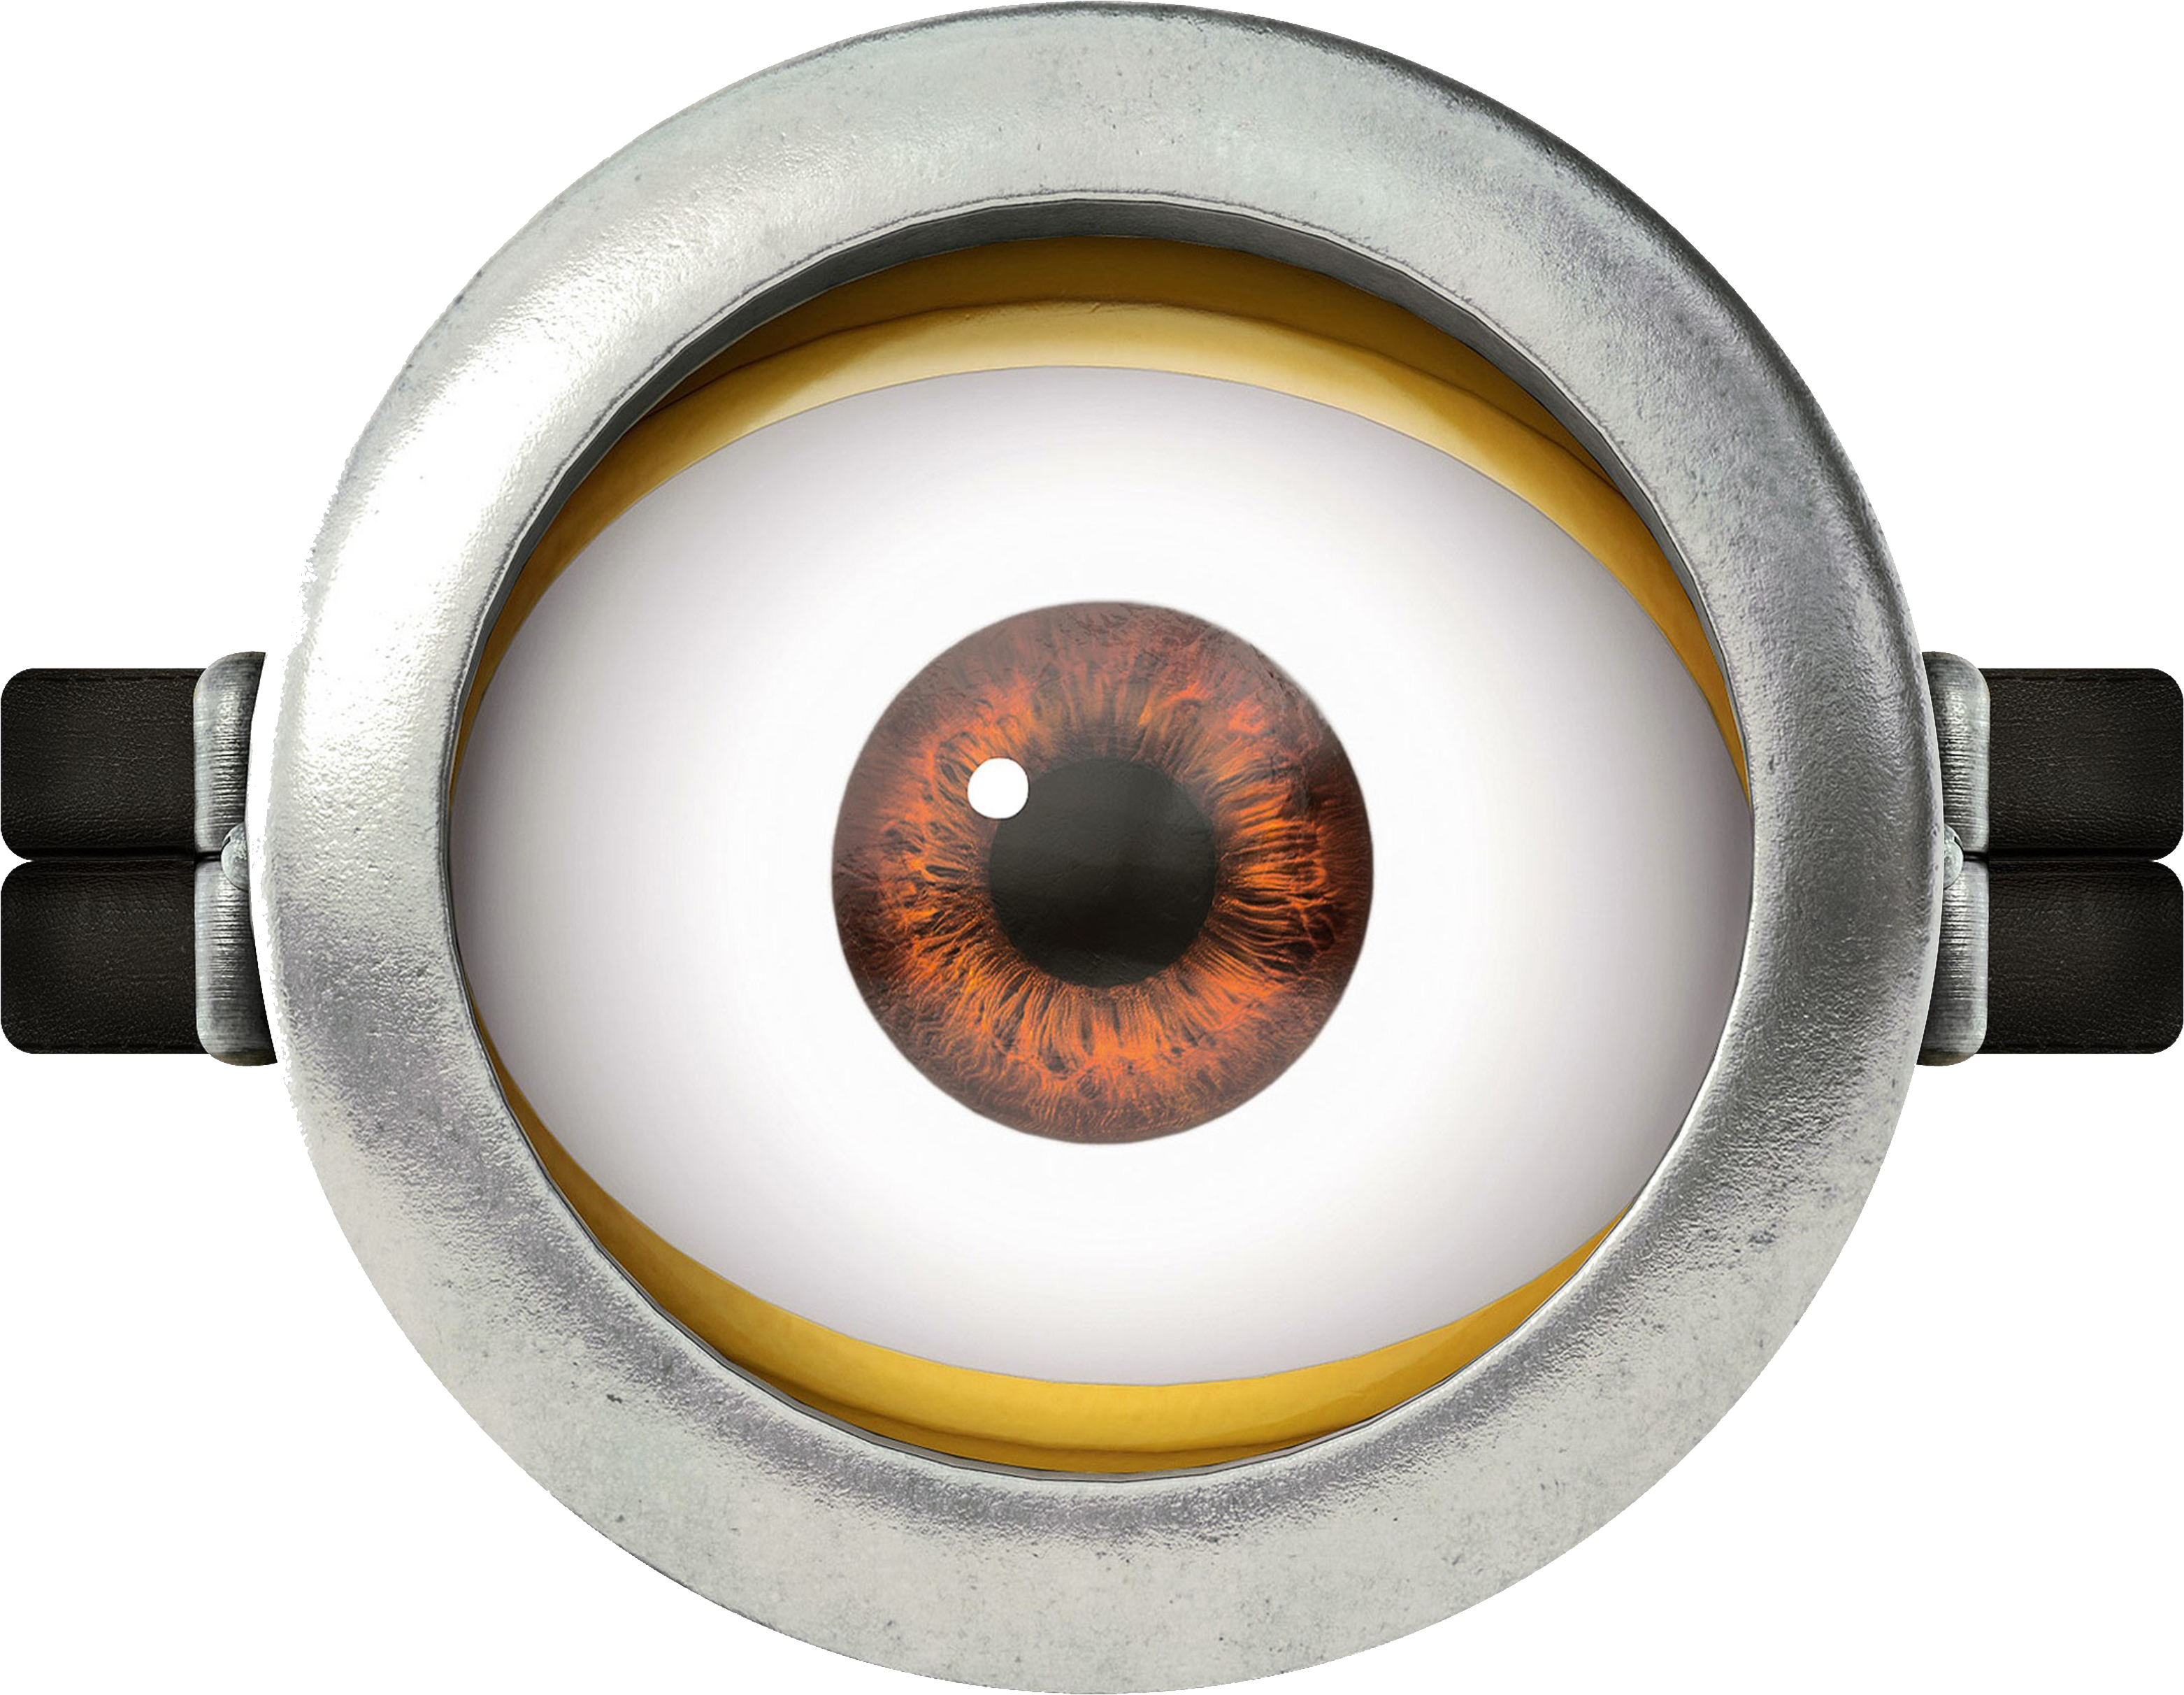 photo about Minions Eyes Printable identified as Minion Eyes Png Absolutely free Minion Eyes.png Clear Illustrations or photos